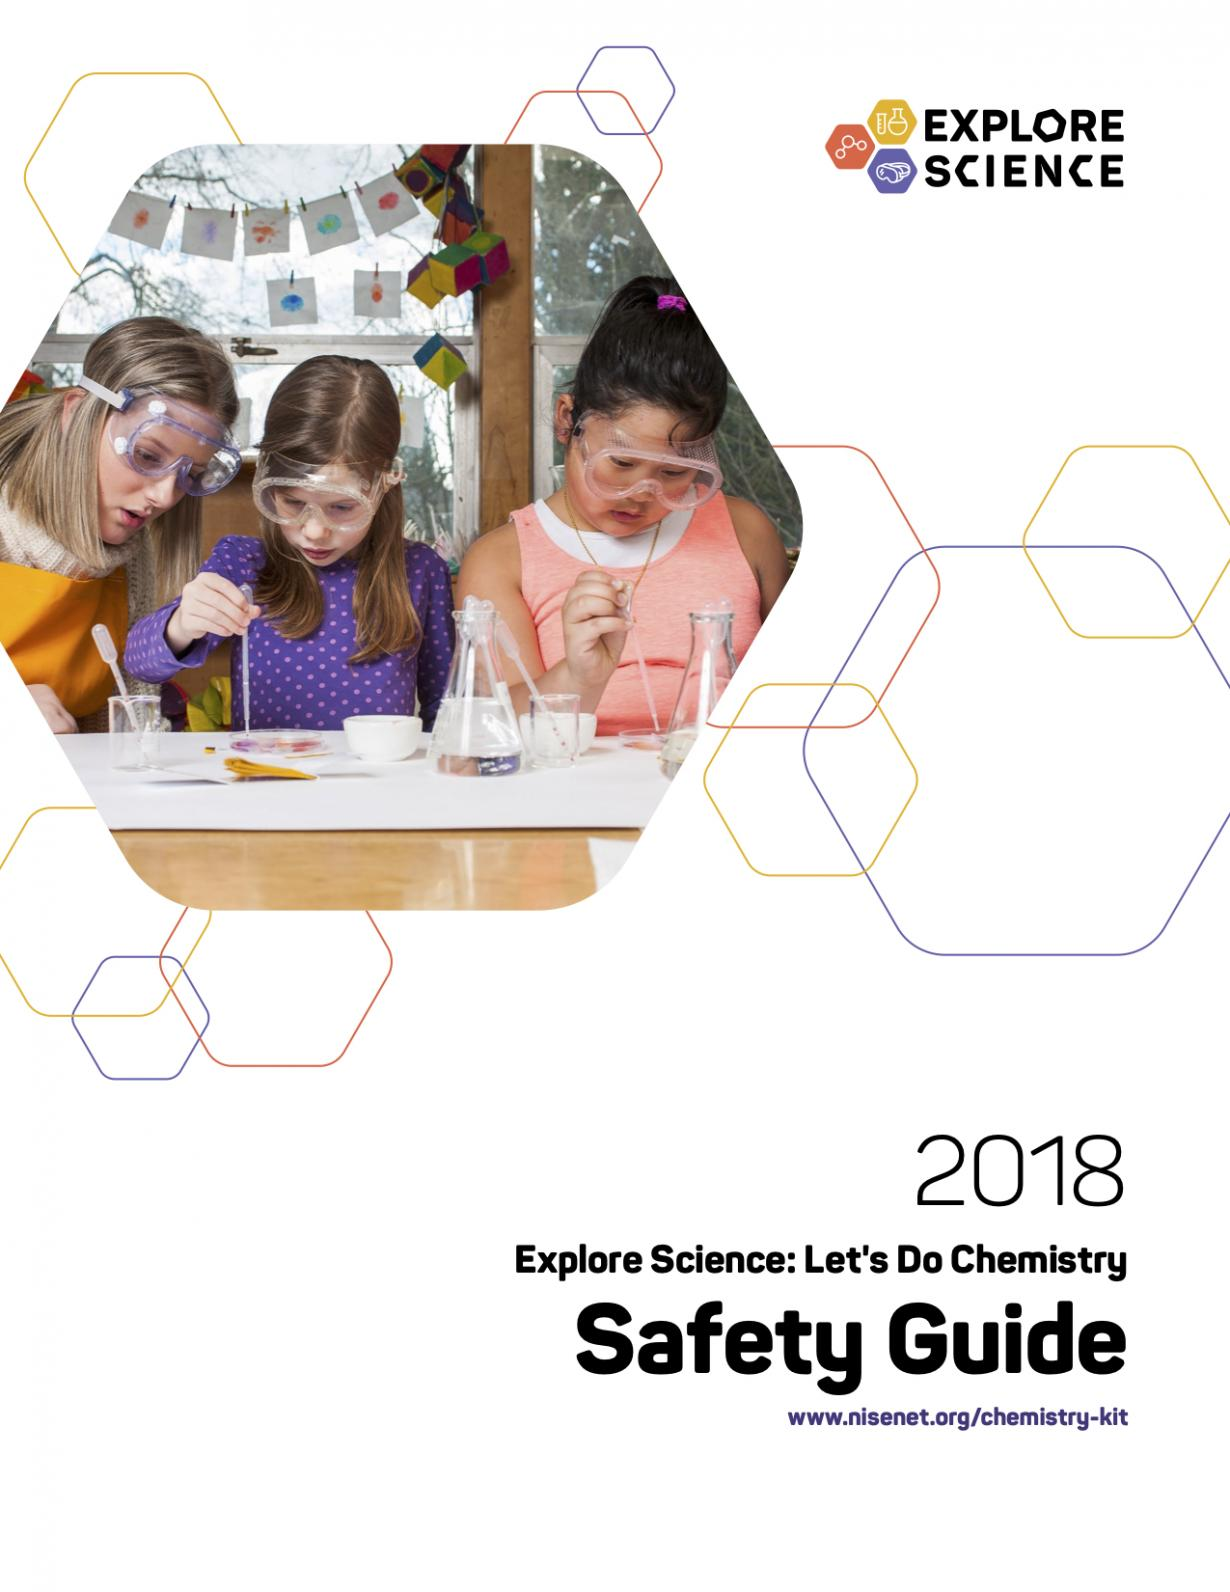 Let's Do Chemistry safety guide cover showing children using liquid droppers